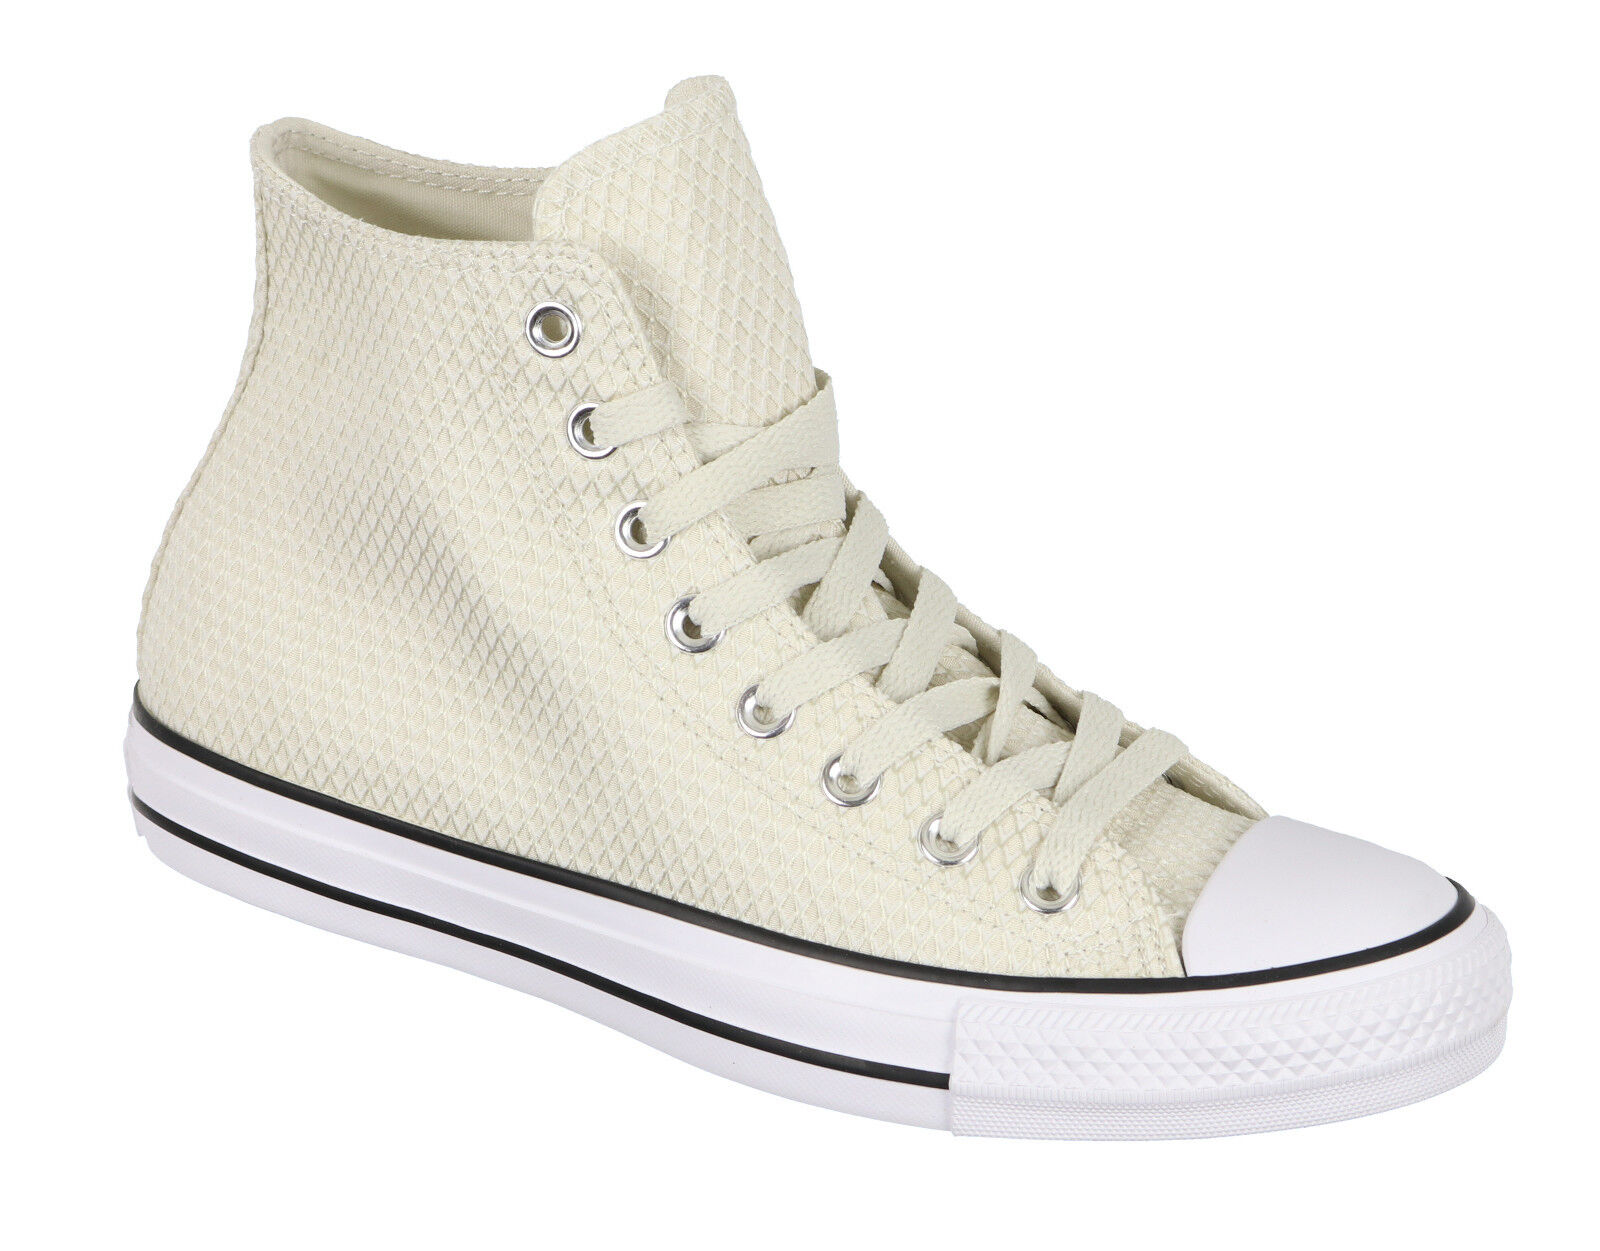 CONVERSE Women's Chuck Taylor All Star High Tops sz 6 Buff Beige White Hi